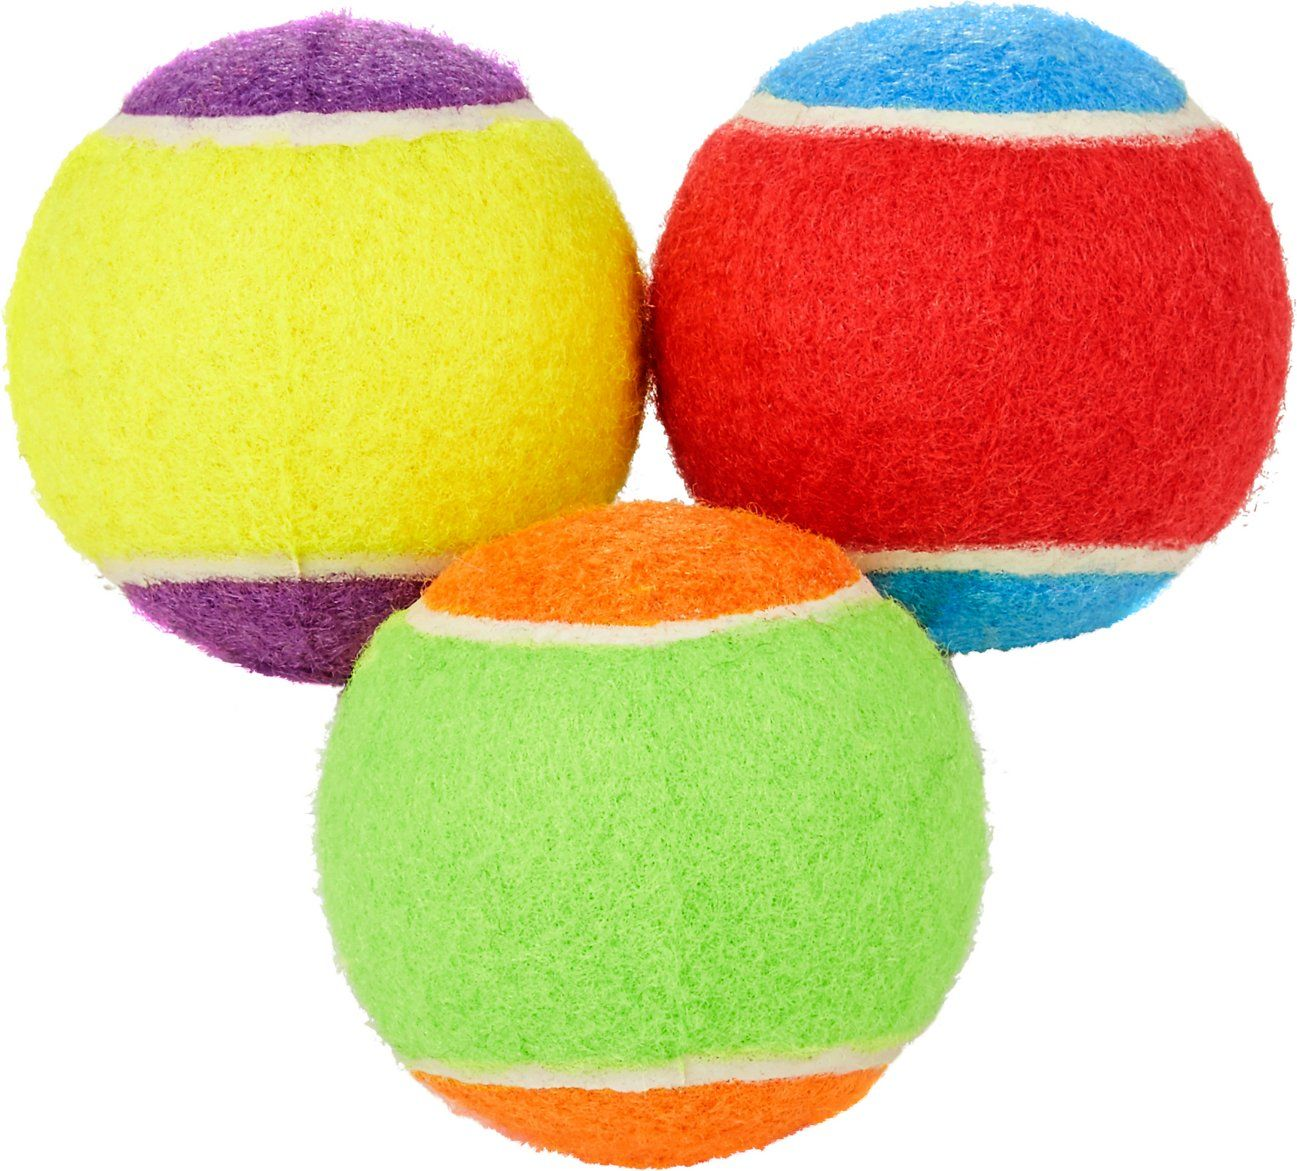 Frisco Fetch Squeaking Colorful Tennis Ball Dog Toy 3 Pack